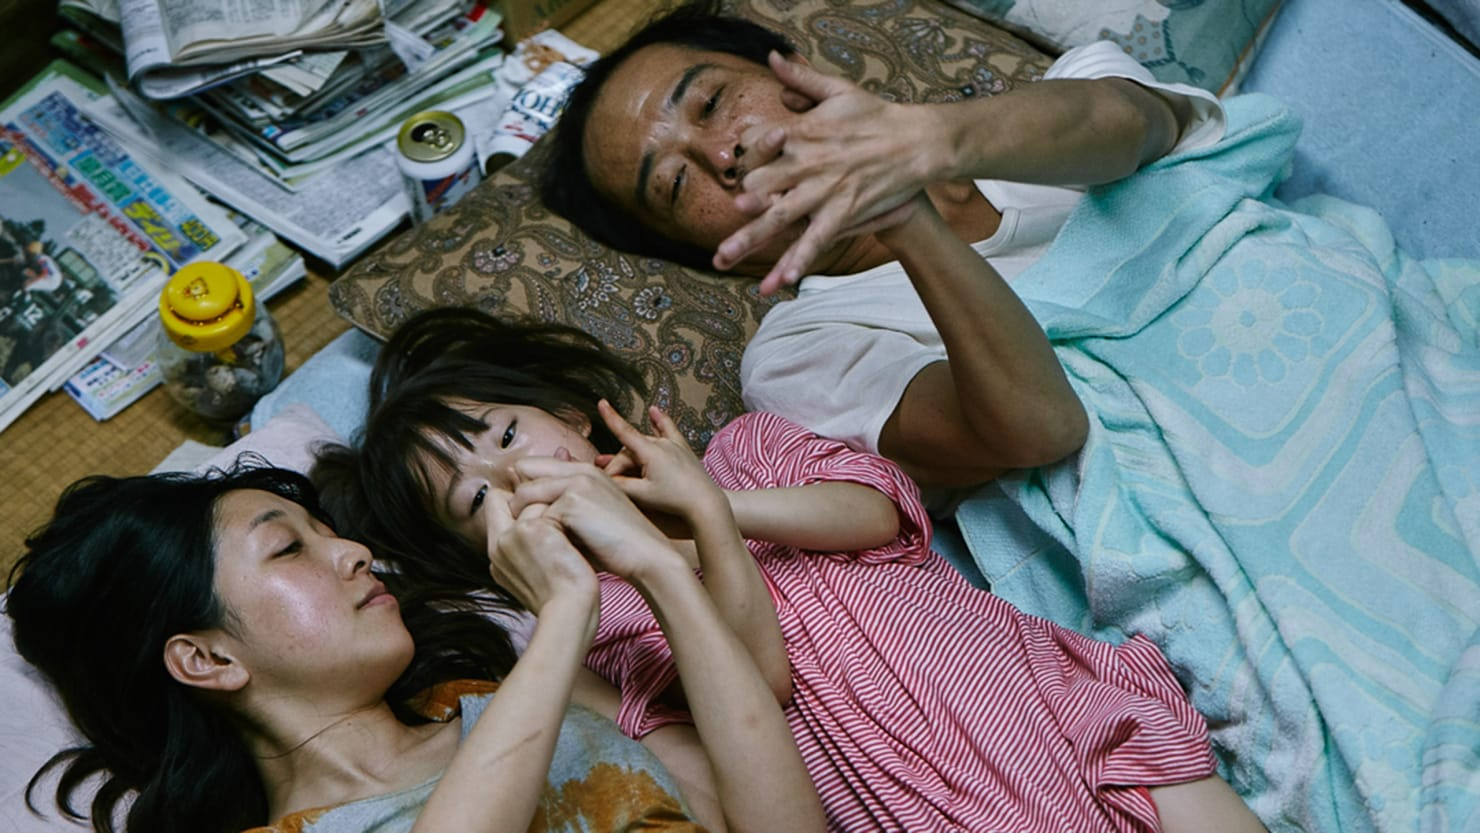 A Japanese Cinematic Masterpiece About Life on the Margins